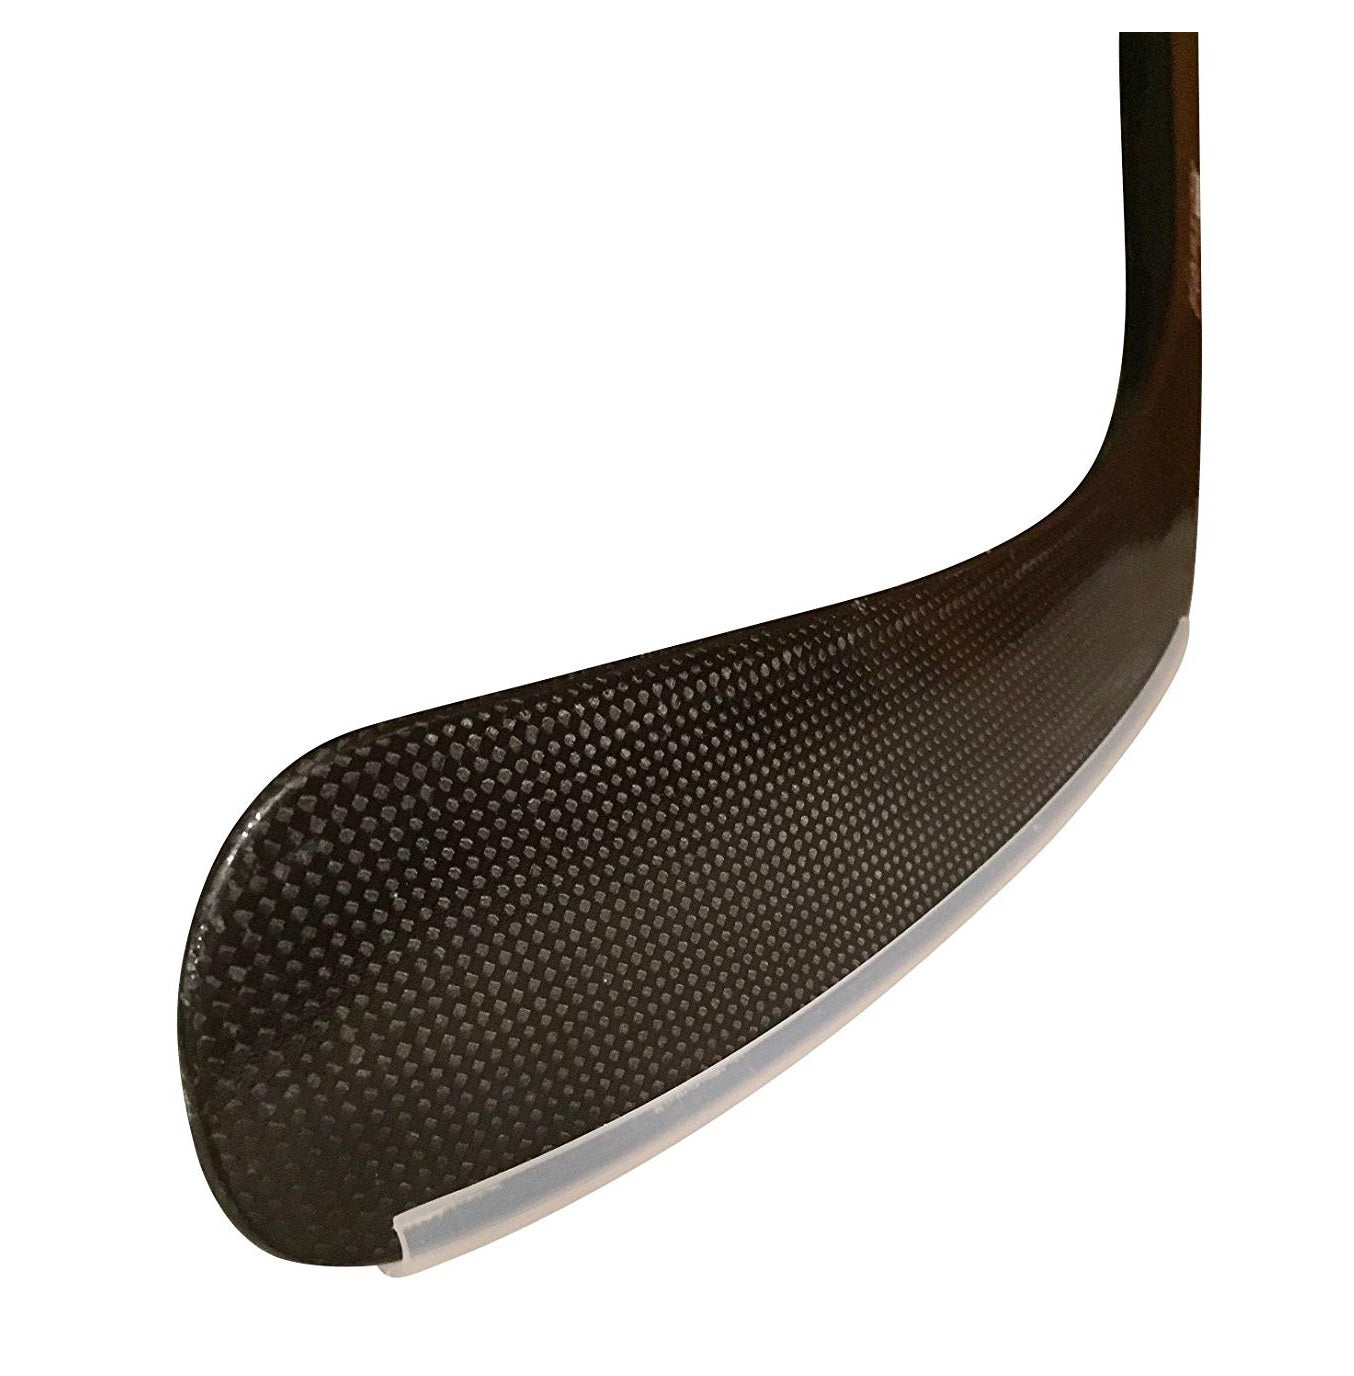 Protect bottom edge of ICE HOCKEY STICK BLADE from chipping and cracking